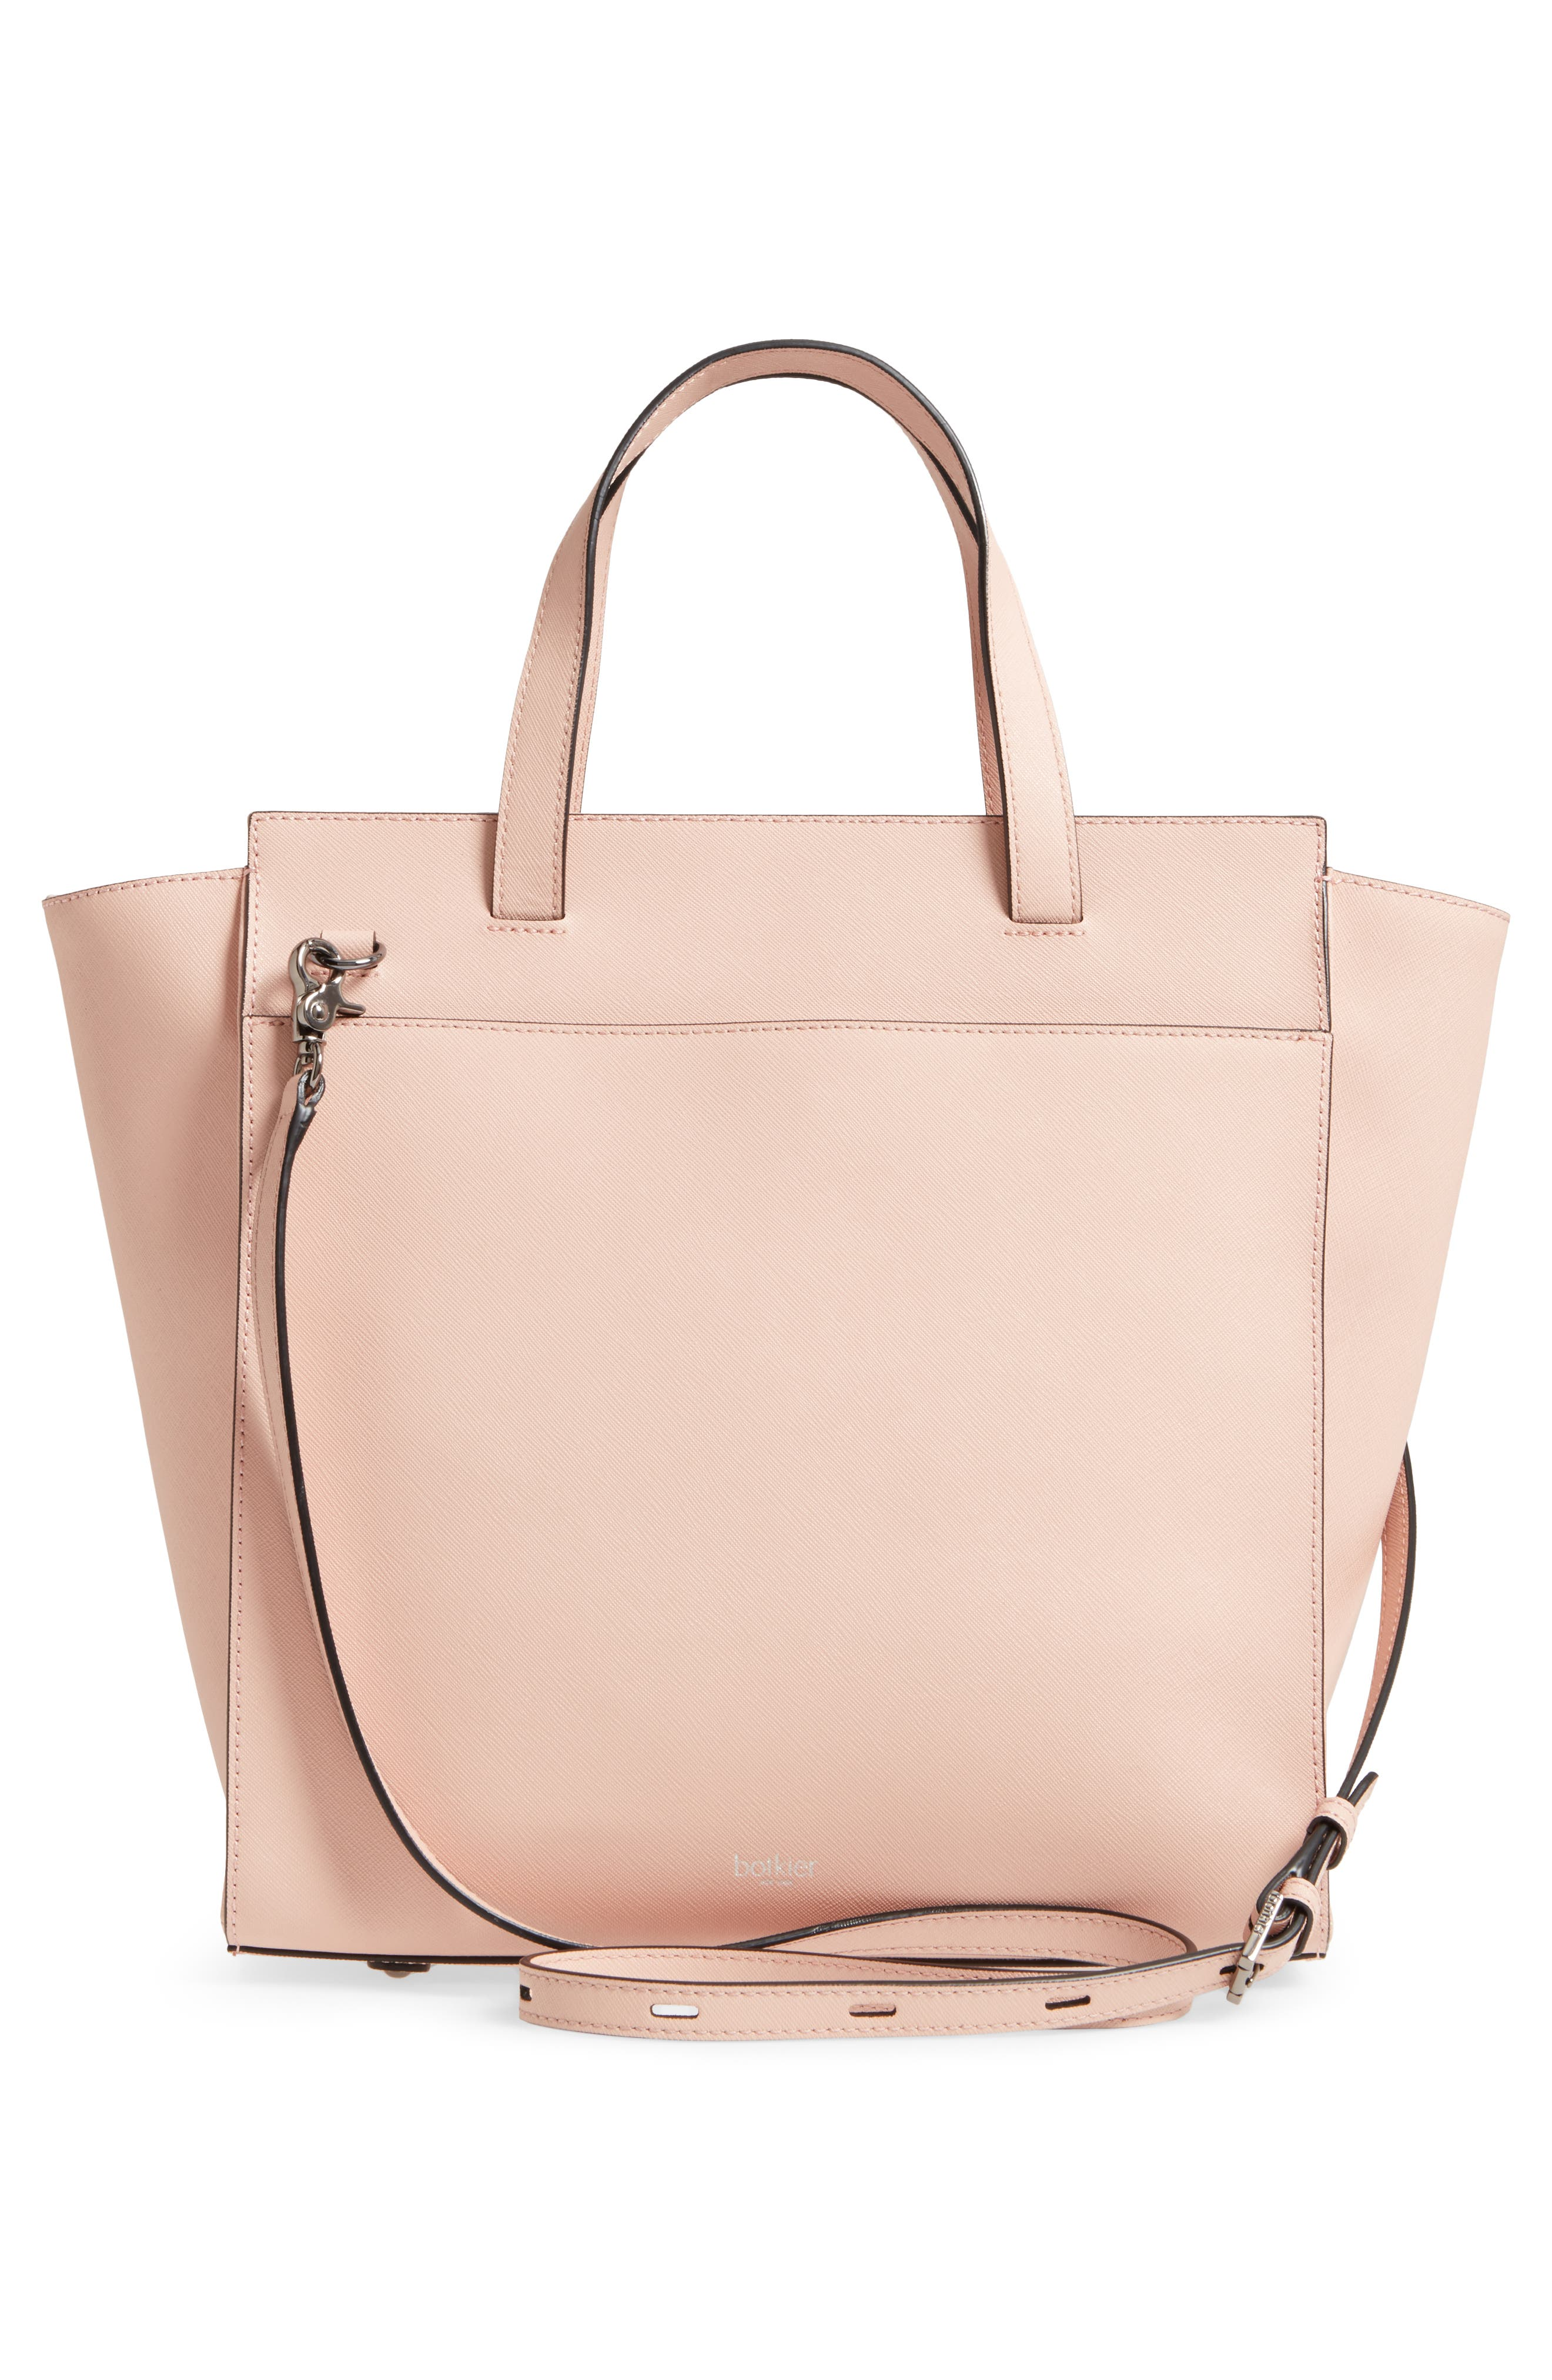 Jagger Leather Tote,                             Alternate thumbnail 3, color,                             Blush